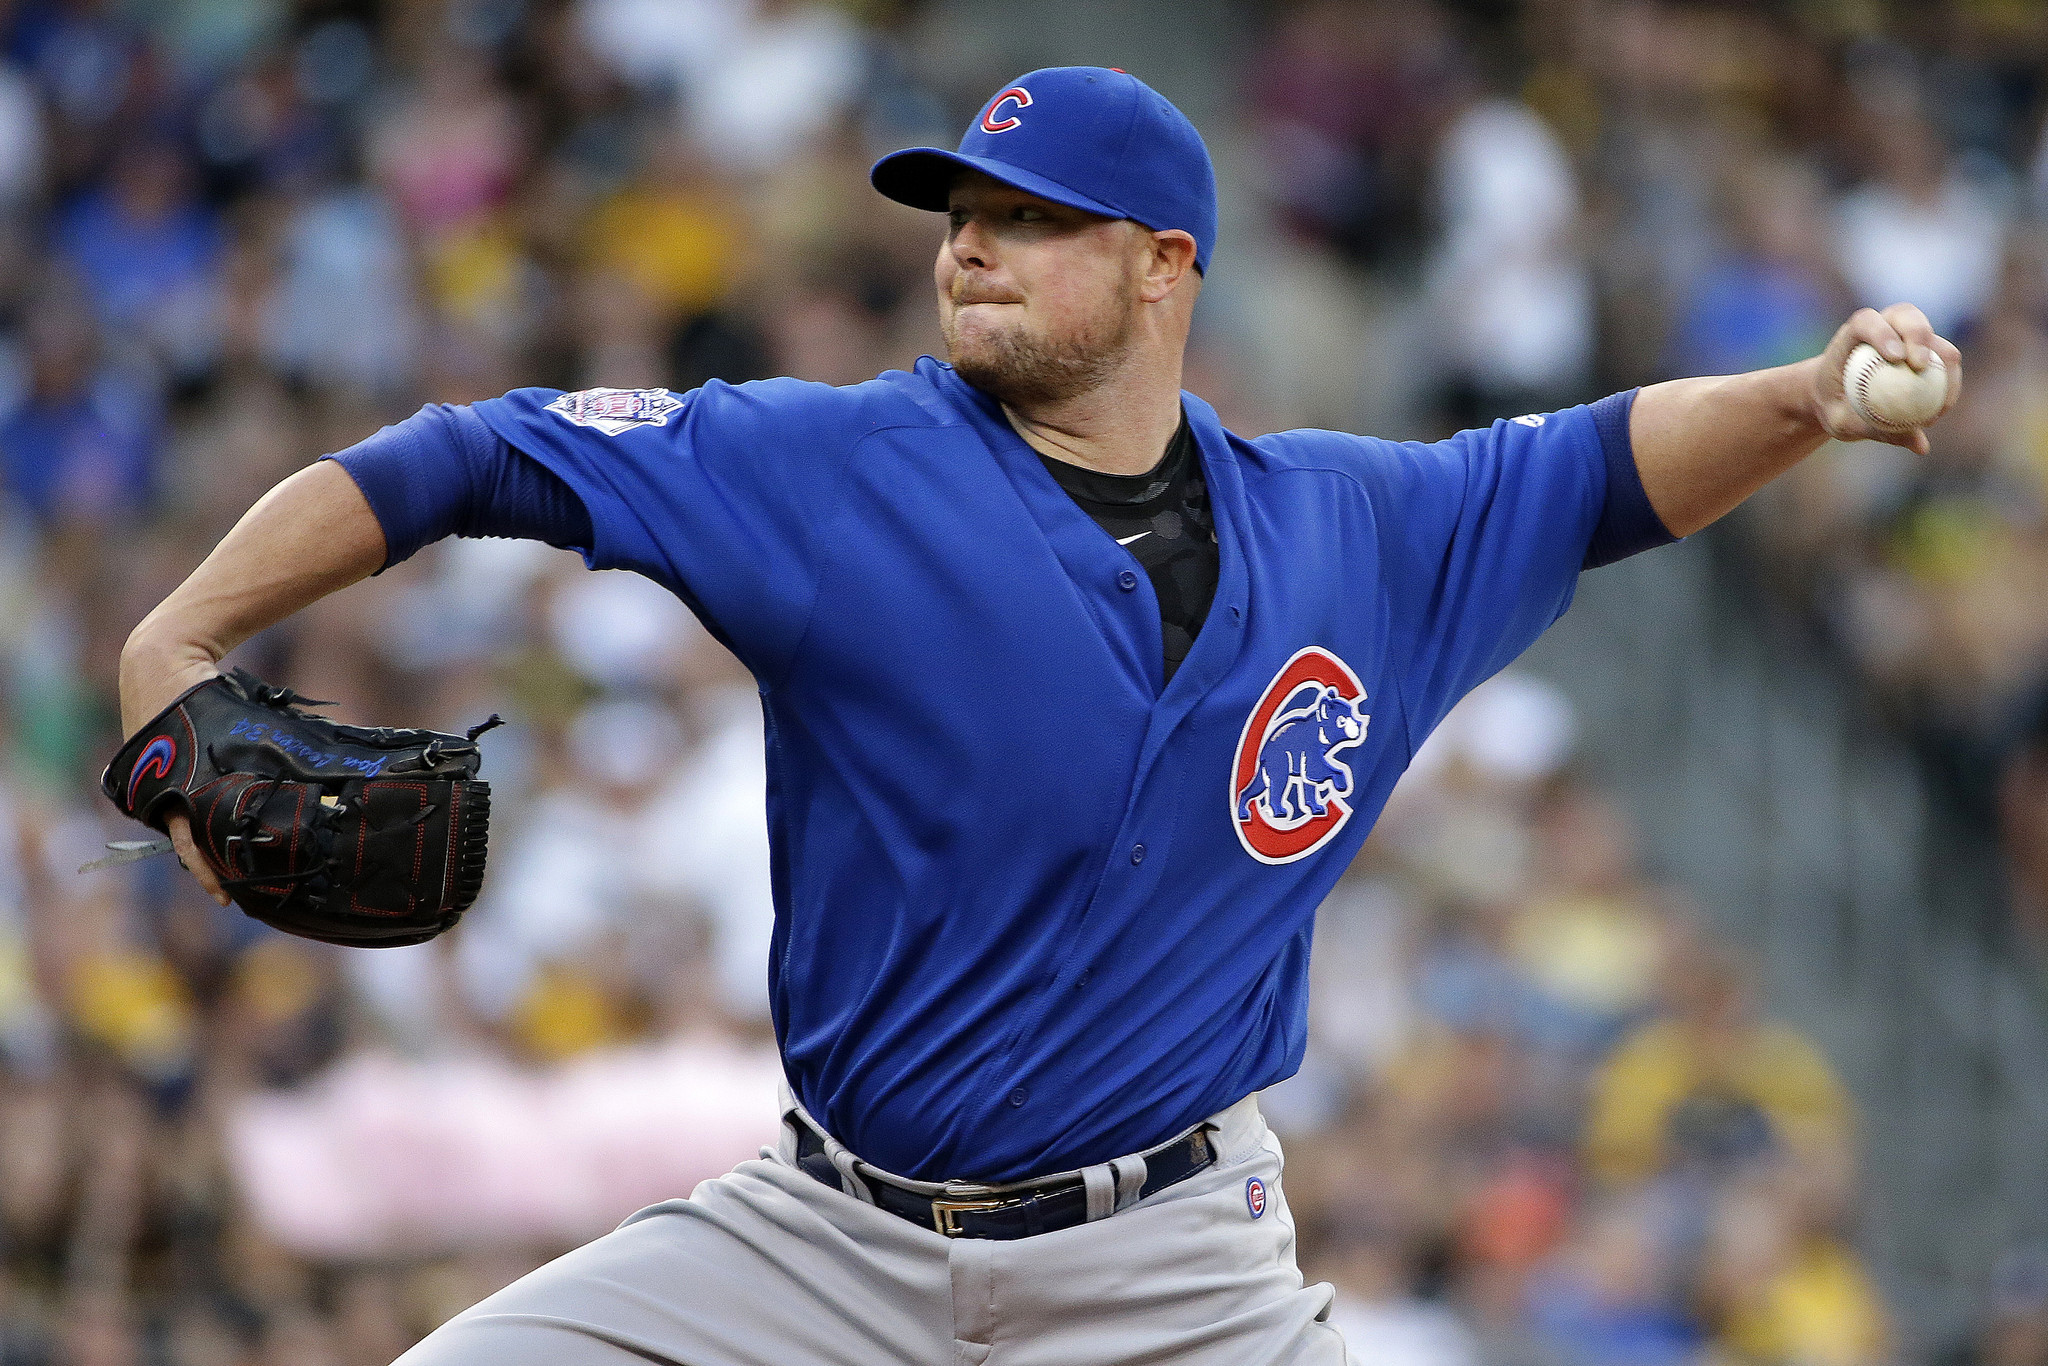 Cubs Jon Lester Trail Pirates 7 5 In 5th Baseball